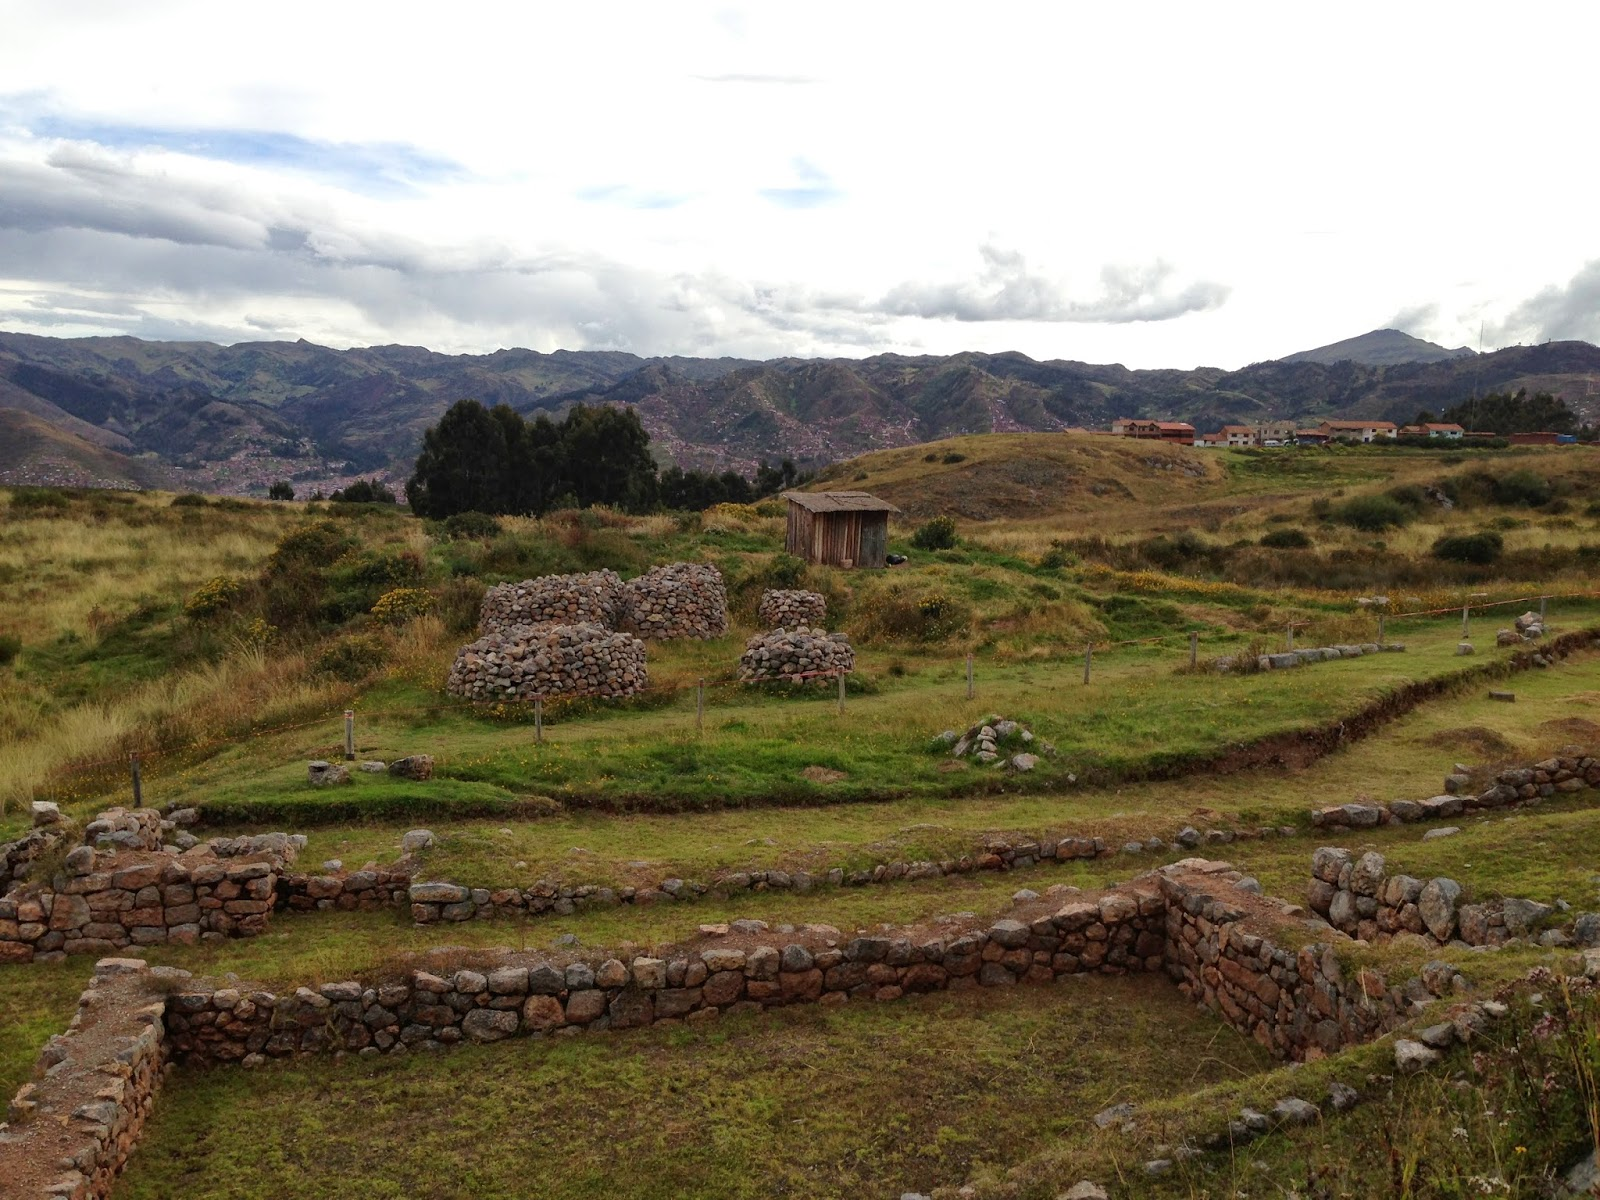 We finally found our Cusco ruins!